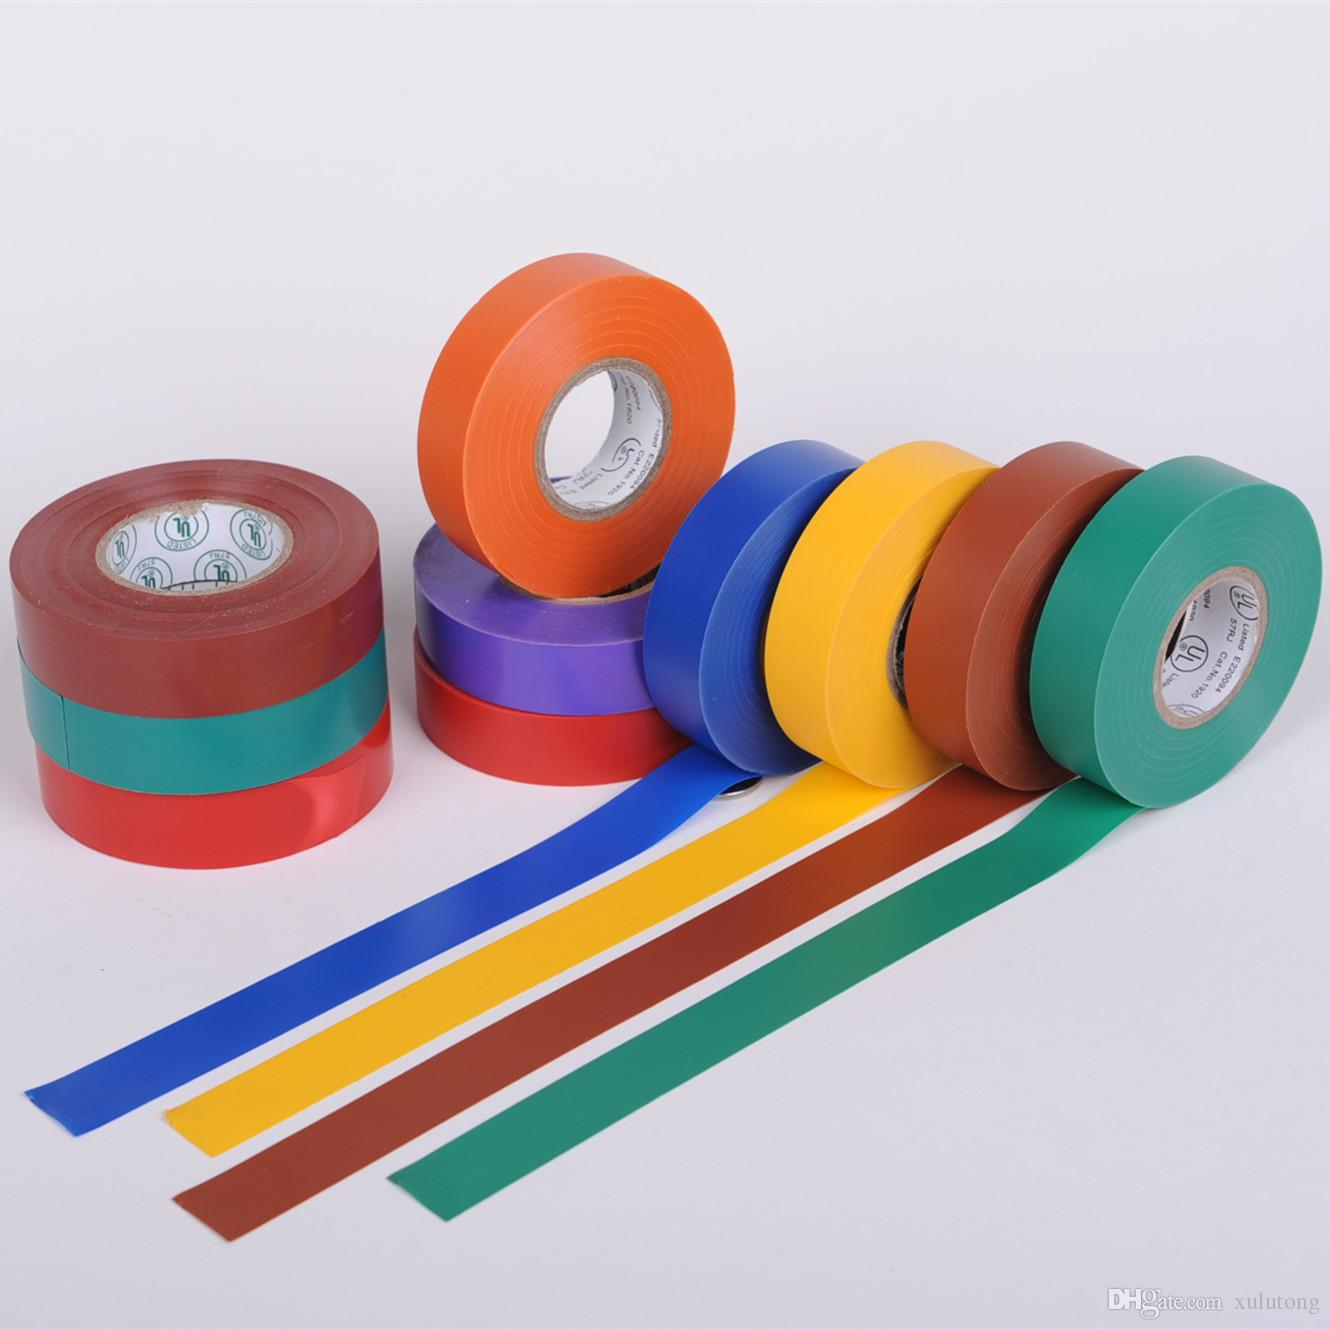 How To Get Sticky Duct Tape Residue Off Clothes Bahuma Sticker Wiring Loom Harness Adhesive Cloth Fabric Manufacturer 2016 15 Meters Black Electrical Insulation